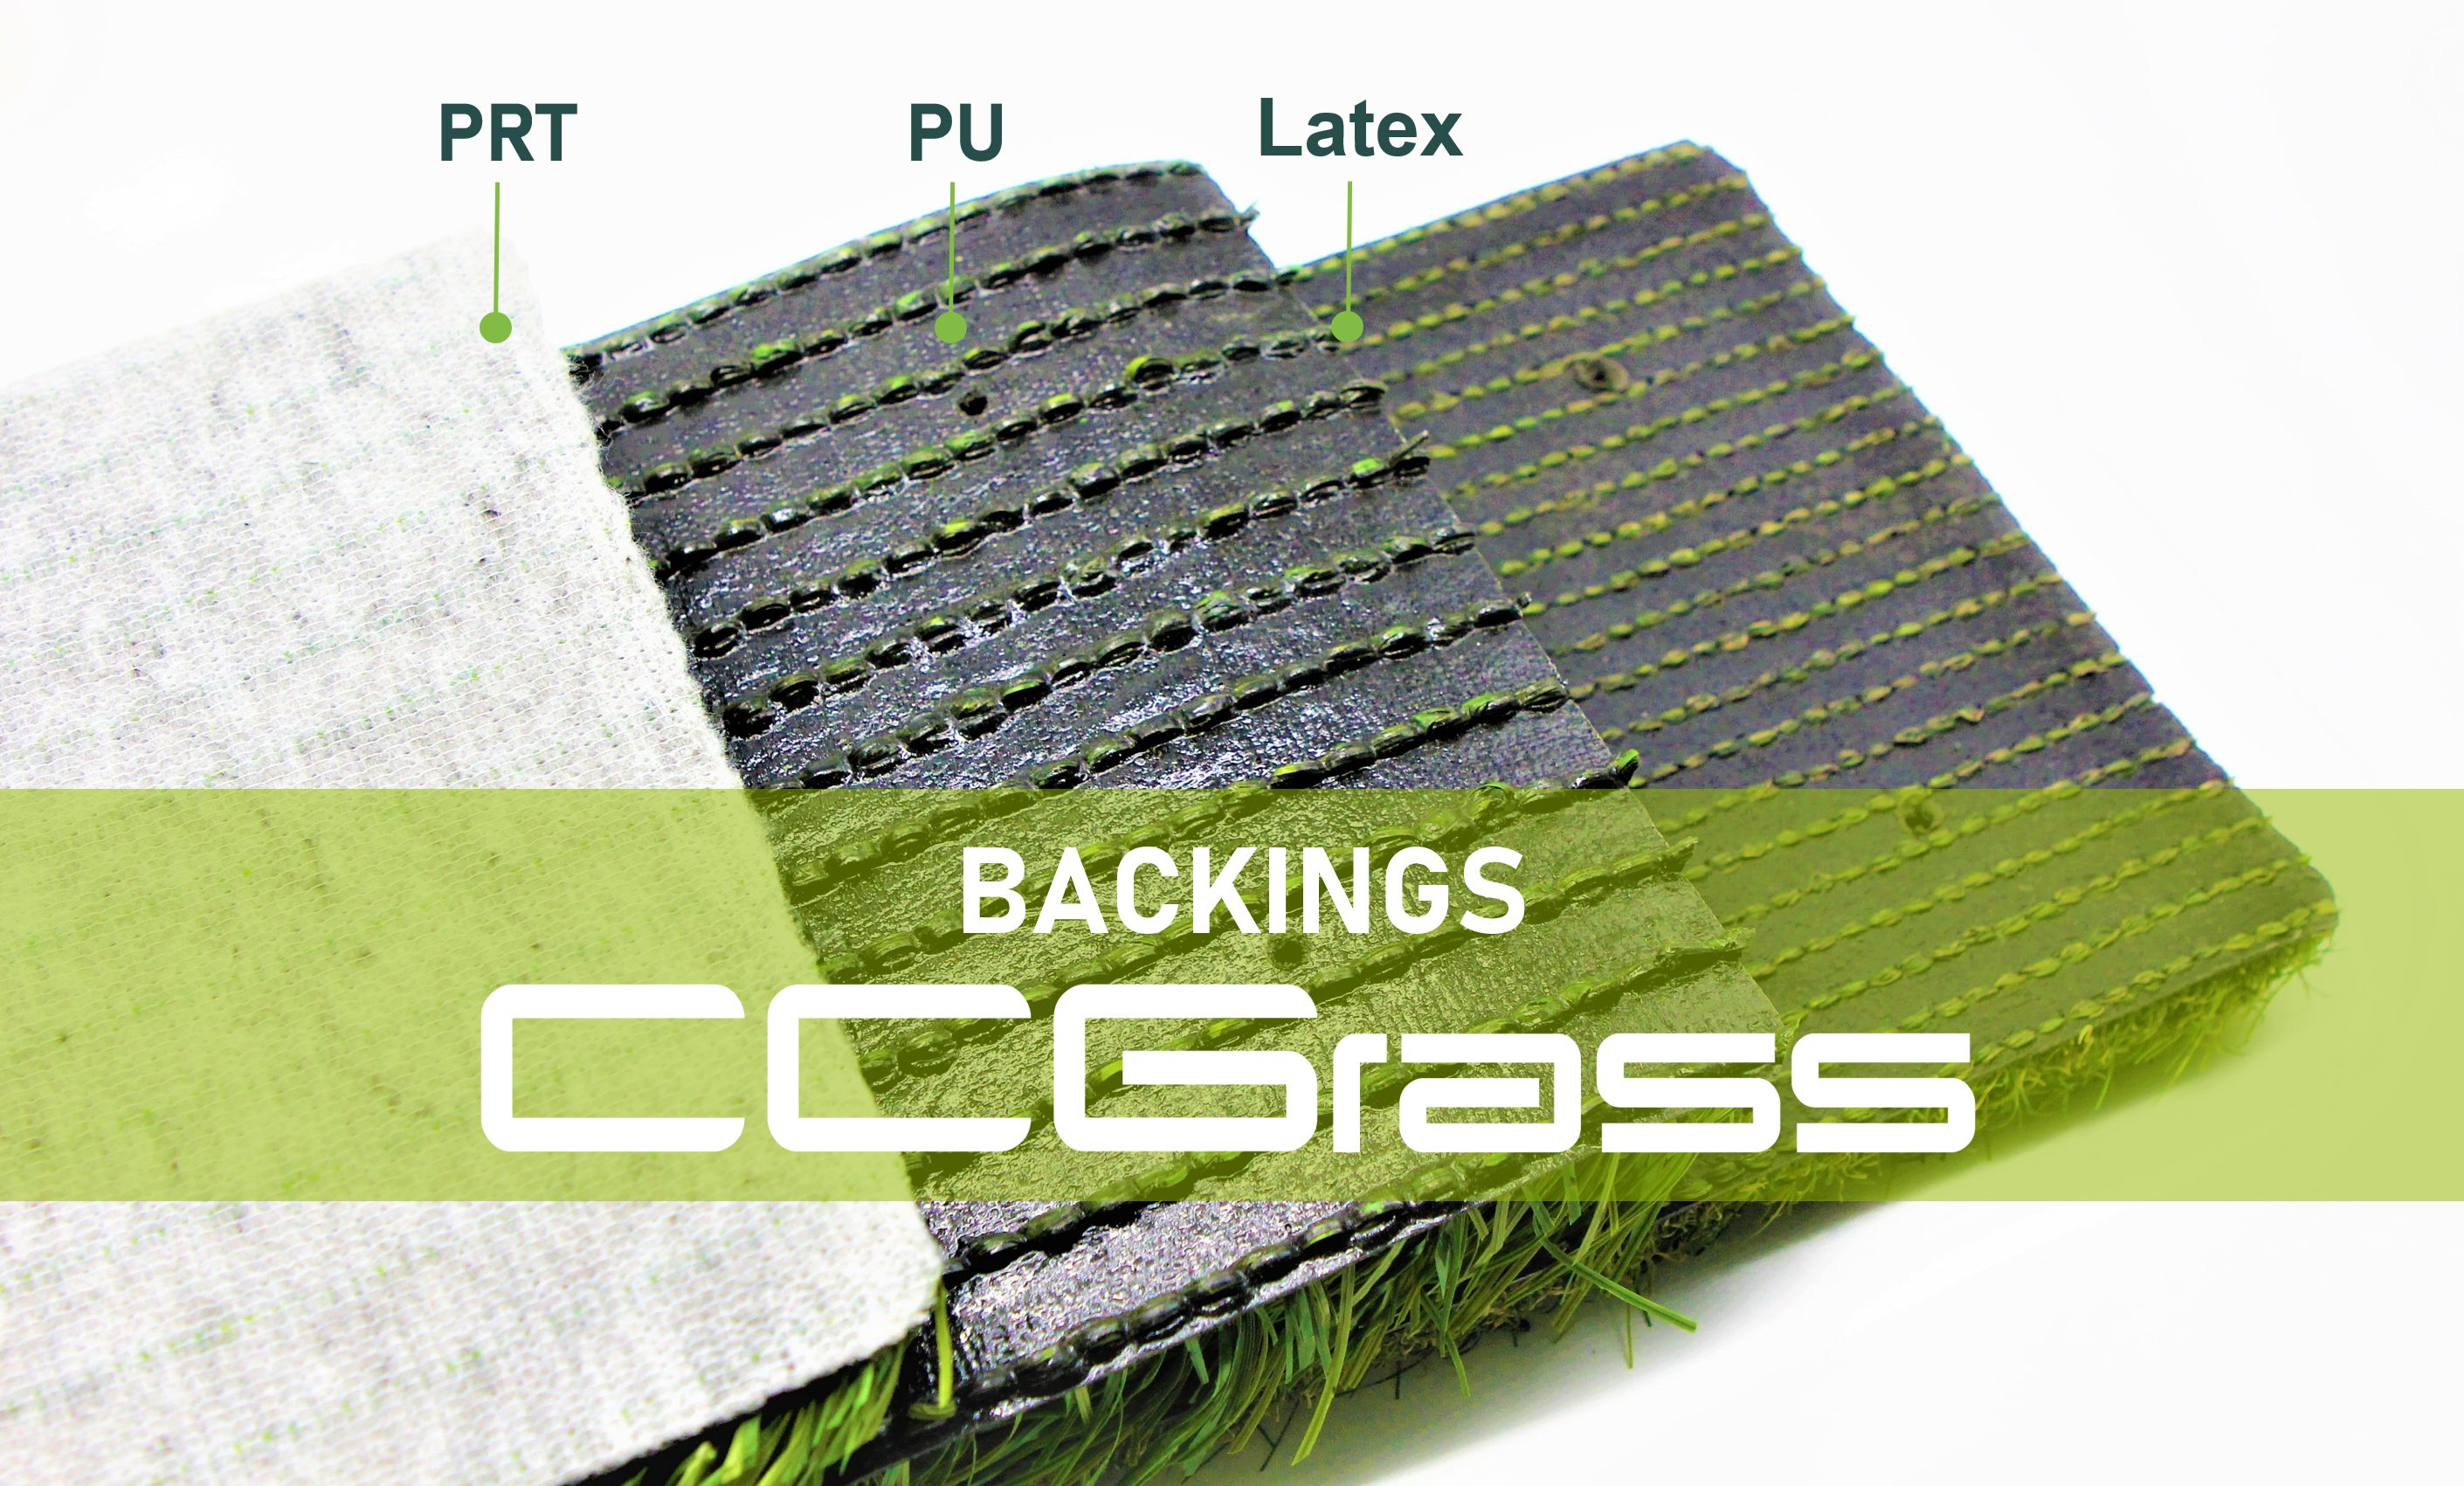 The backing-CCGrass